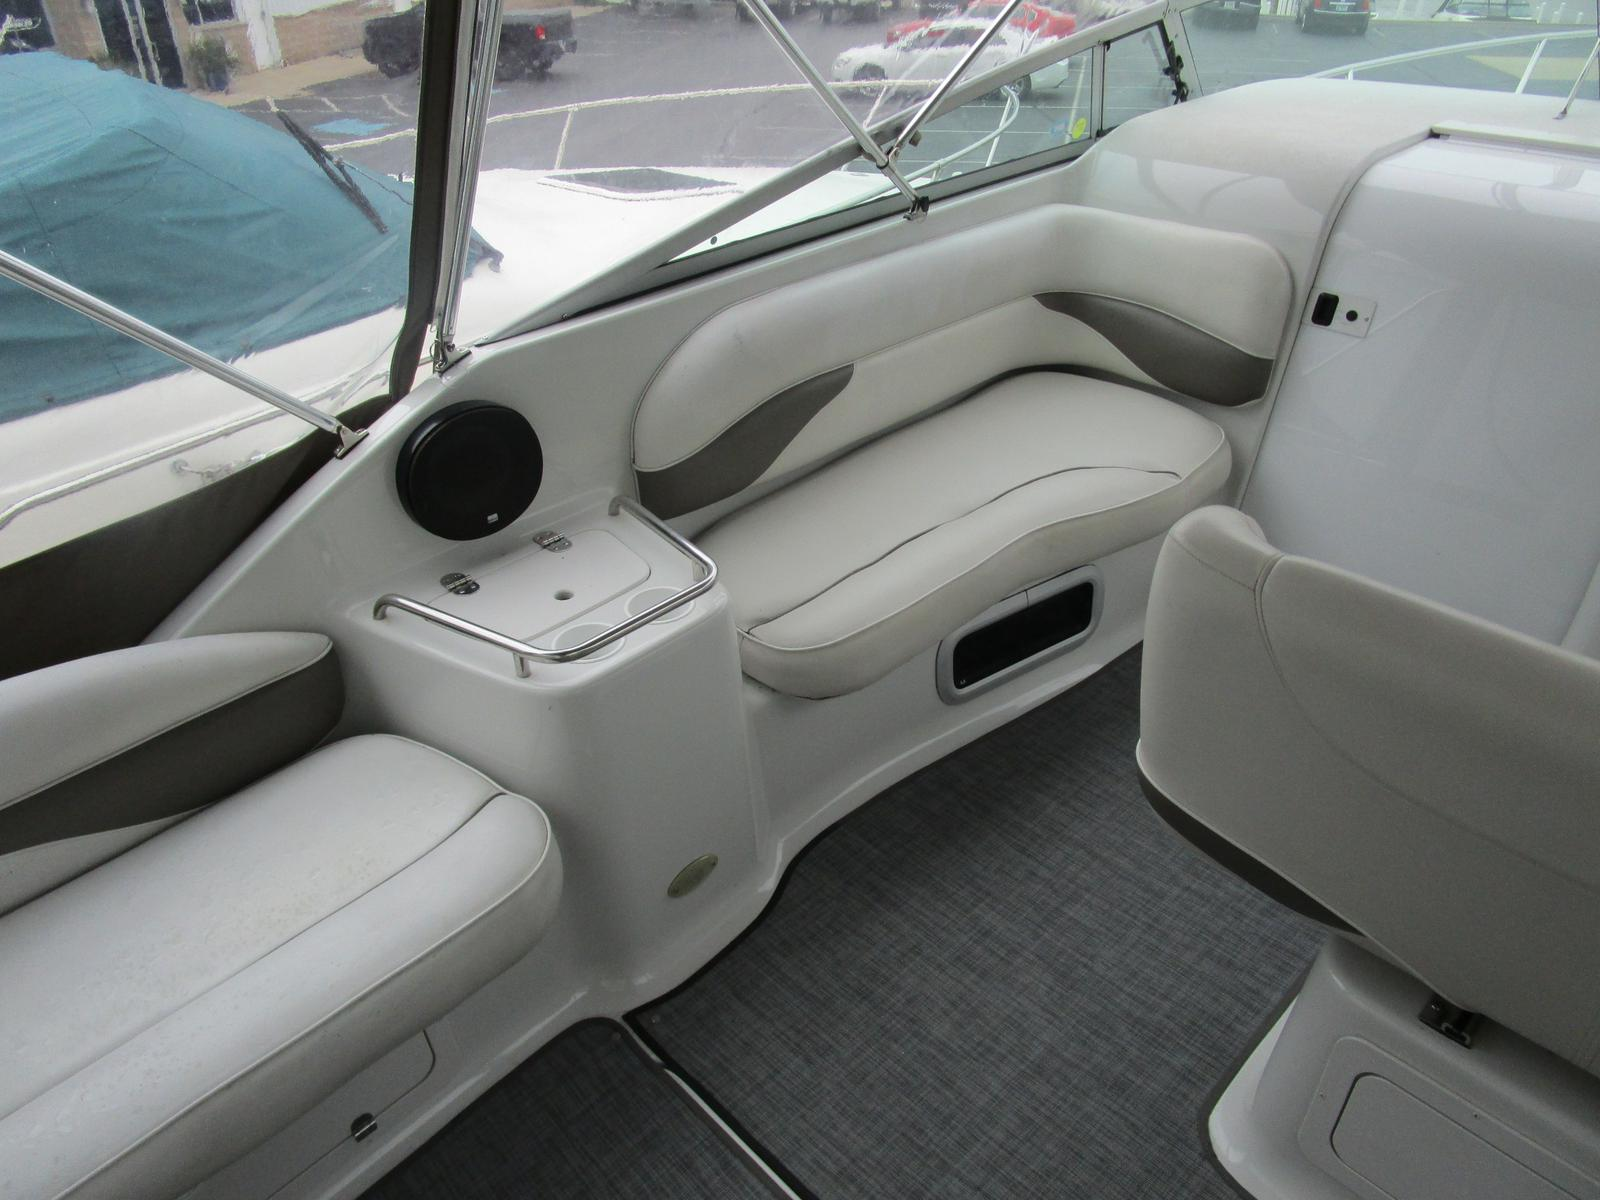 2003 Crownline boat for sale, model of the boat is 262 CR & Image # 3 of 11